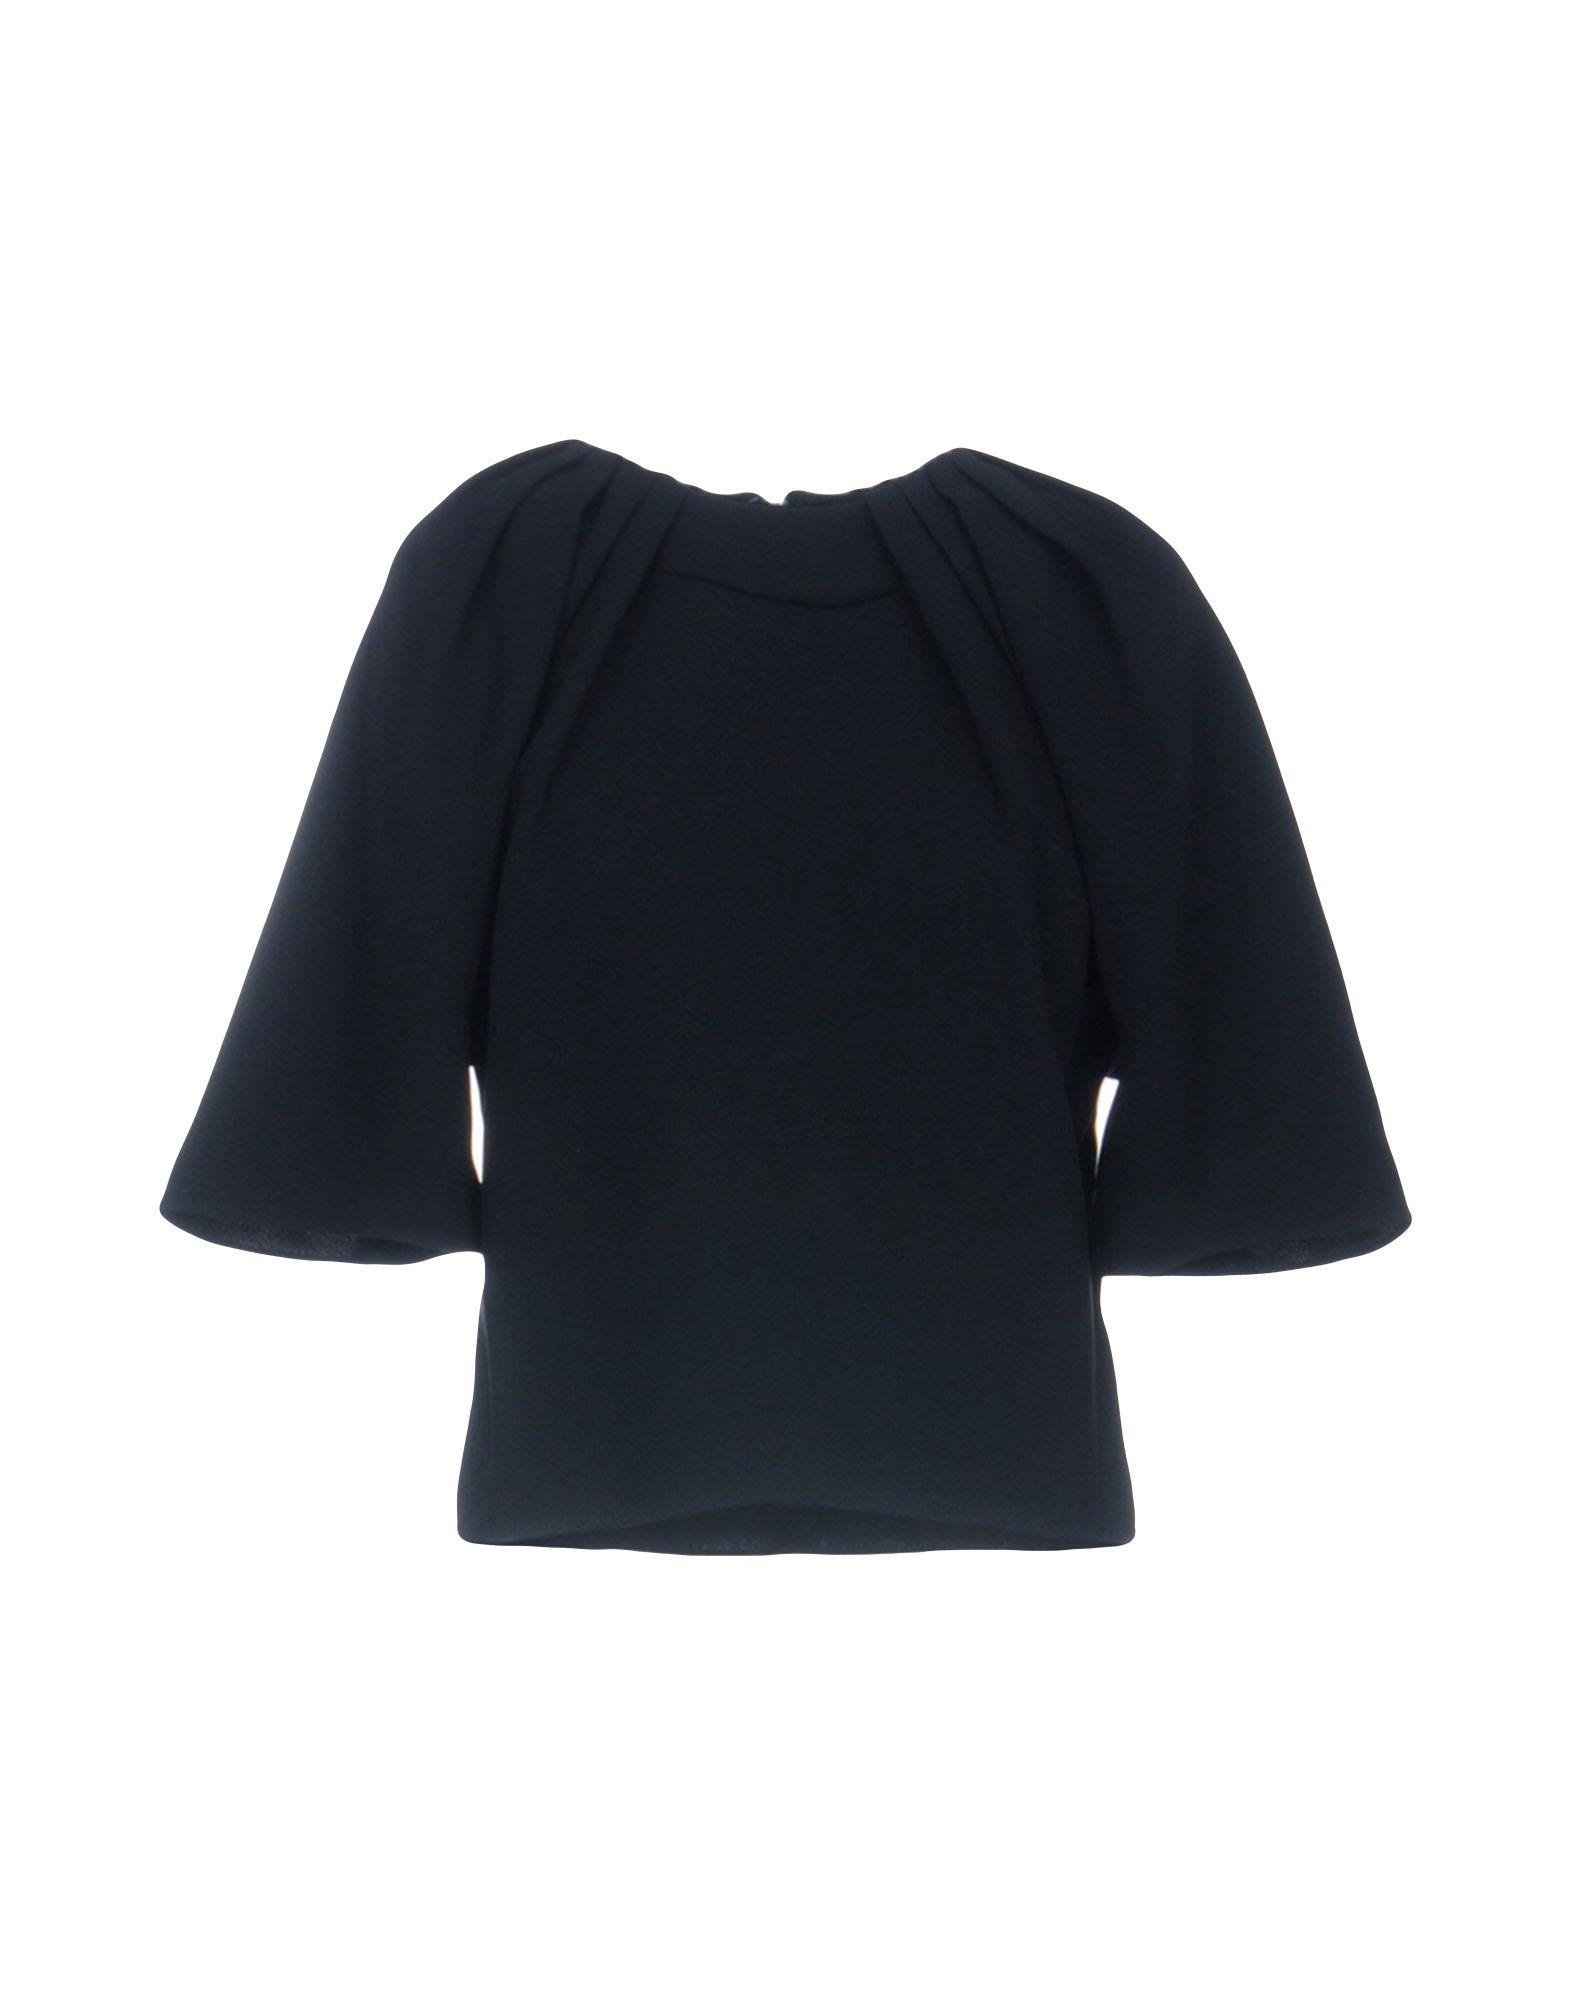 Balenciaga Blouses In Black